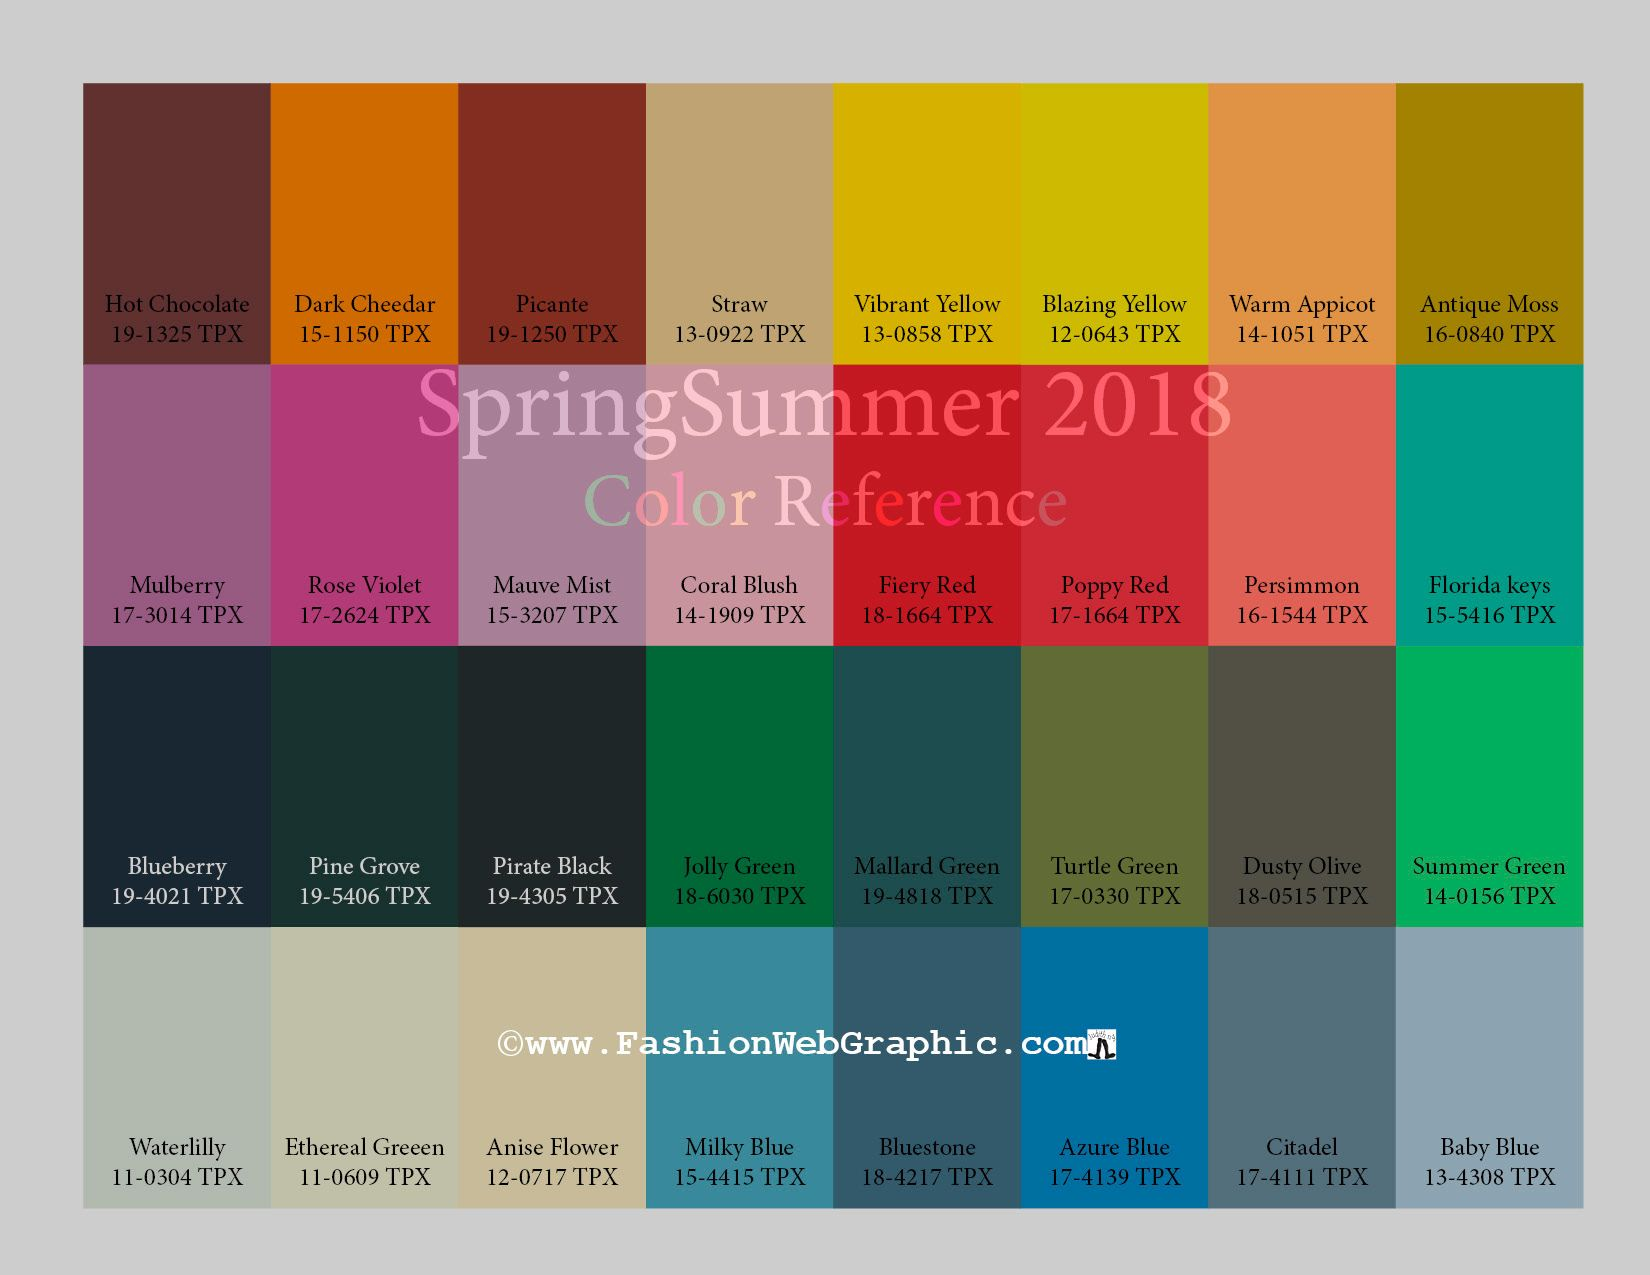 Spring Summer 2018 Trend Forecasting Is A Trend Color